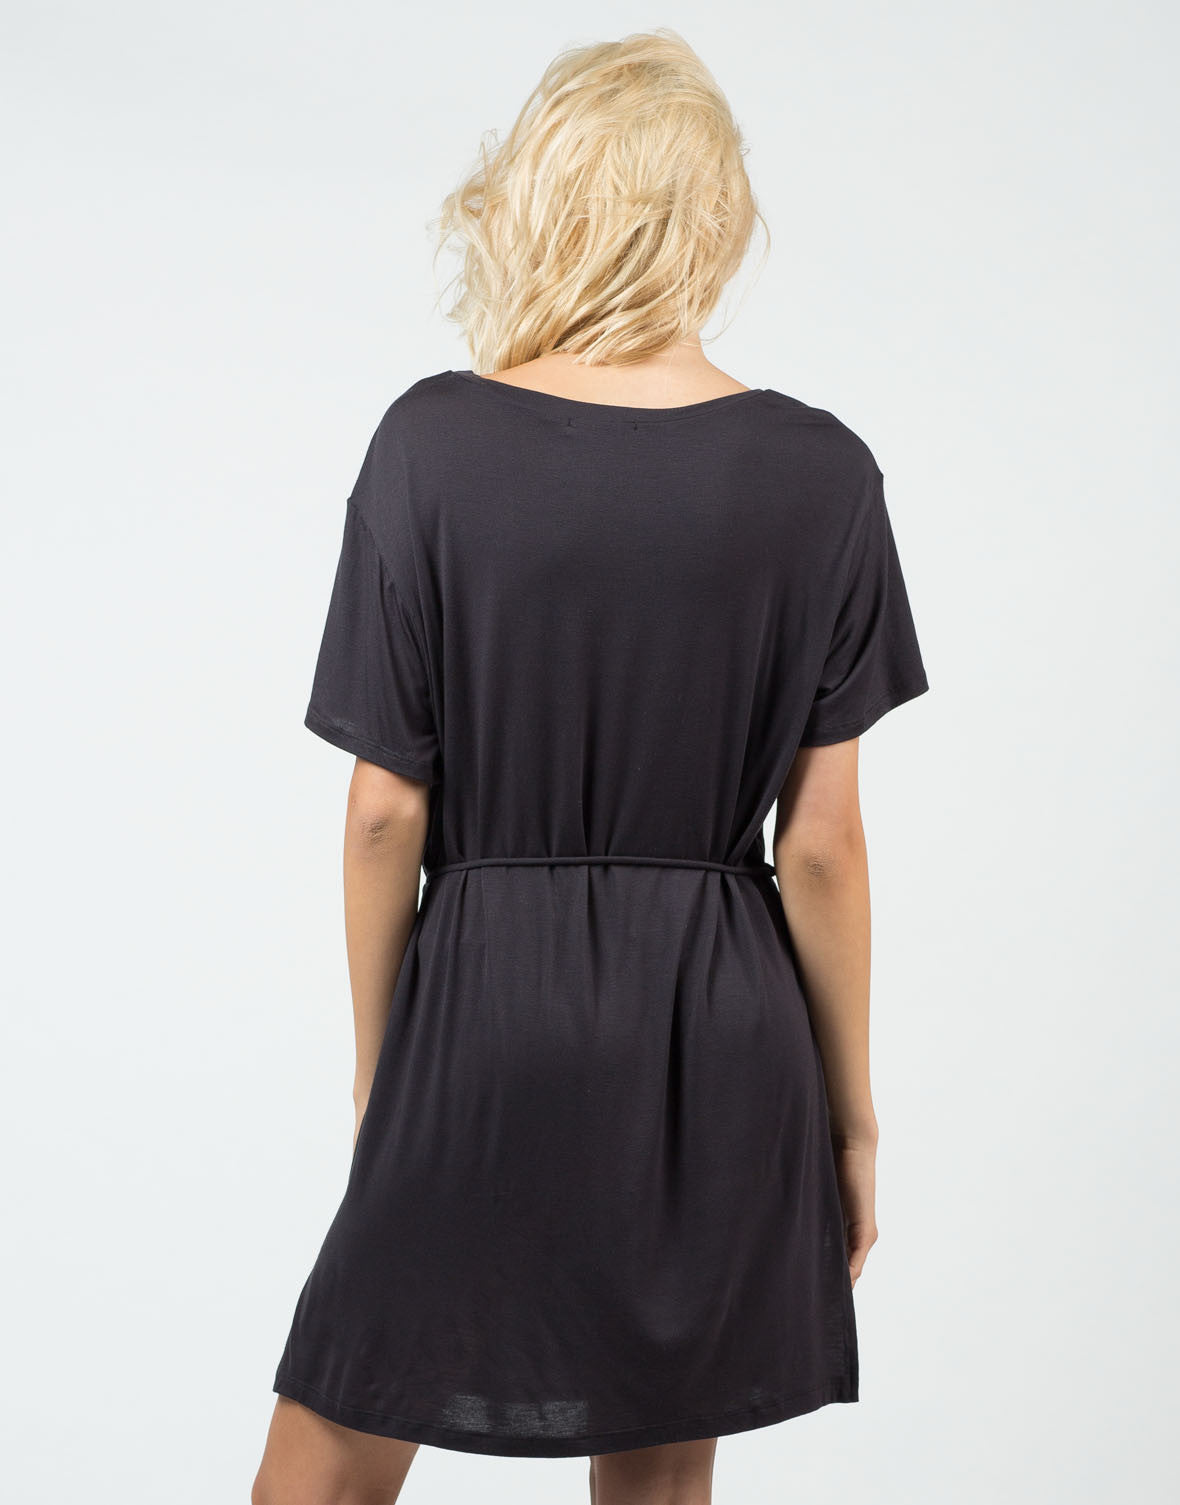 Back View of Front Tie Short Sleeve Dress